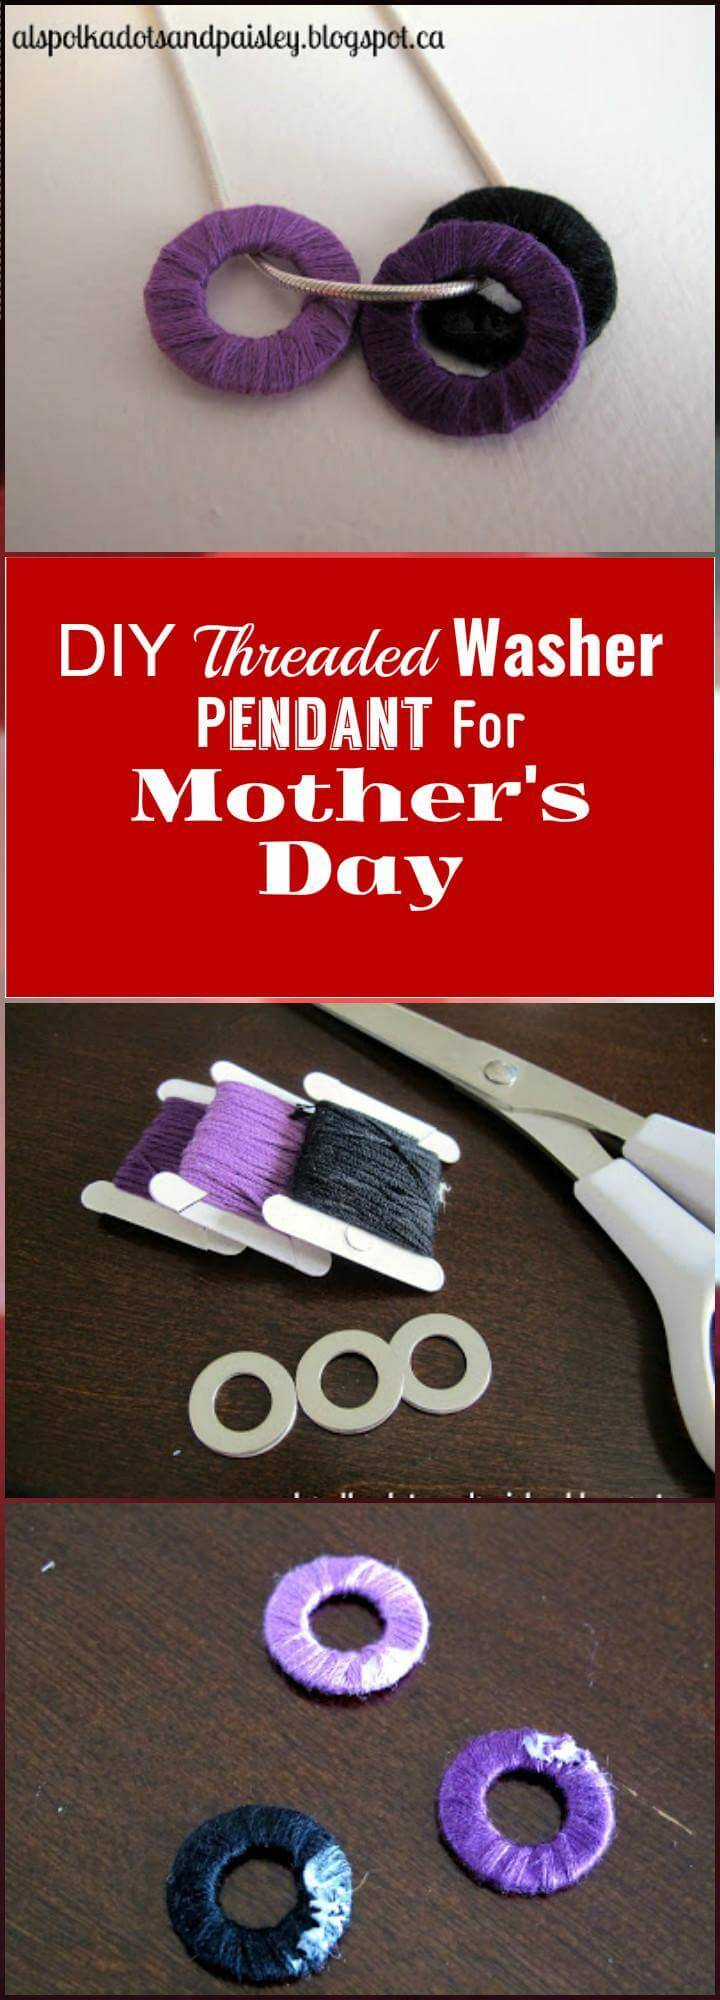 DIY threaded washer pendant for Mother's Day